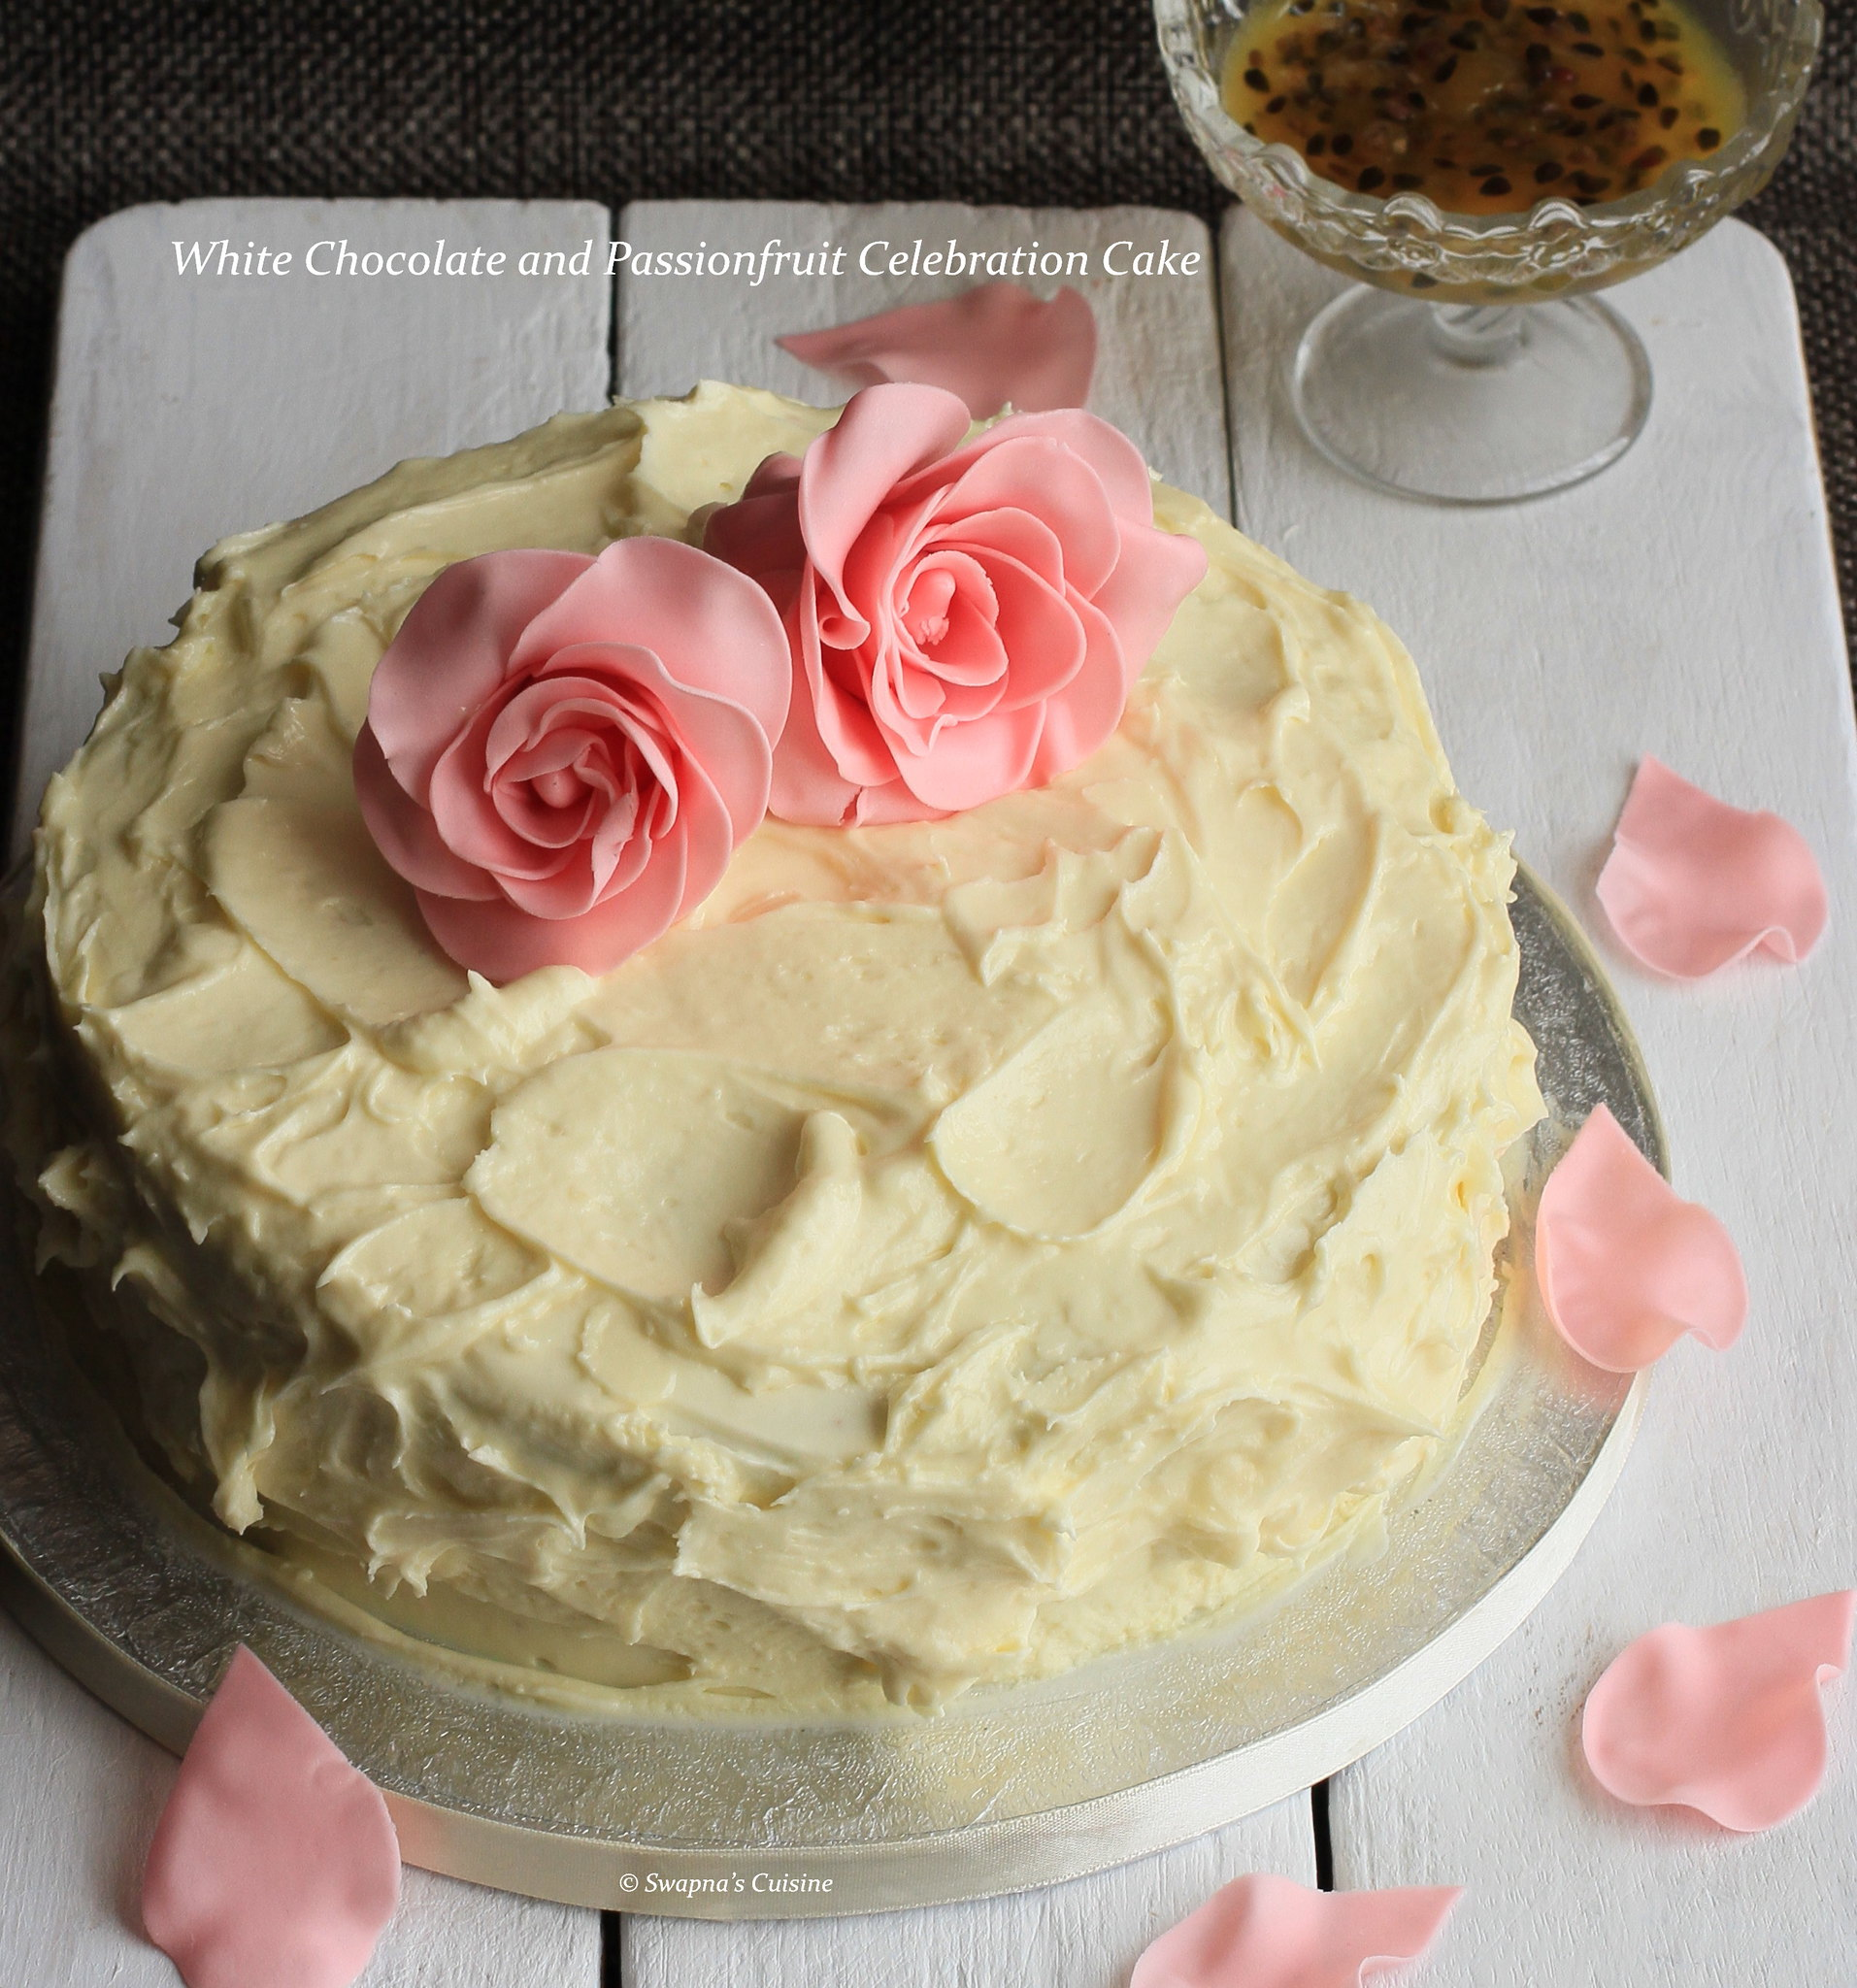 Recipe for White Chocolate and Passionfruit Celebration Cake,